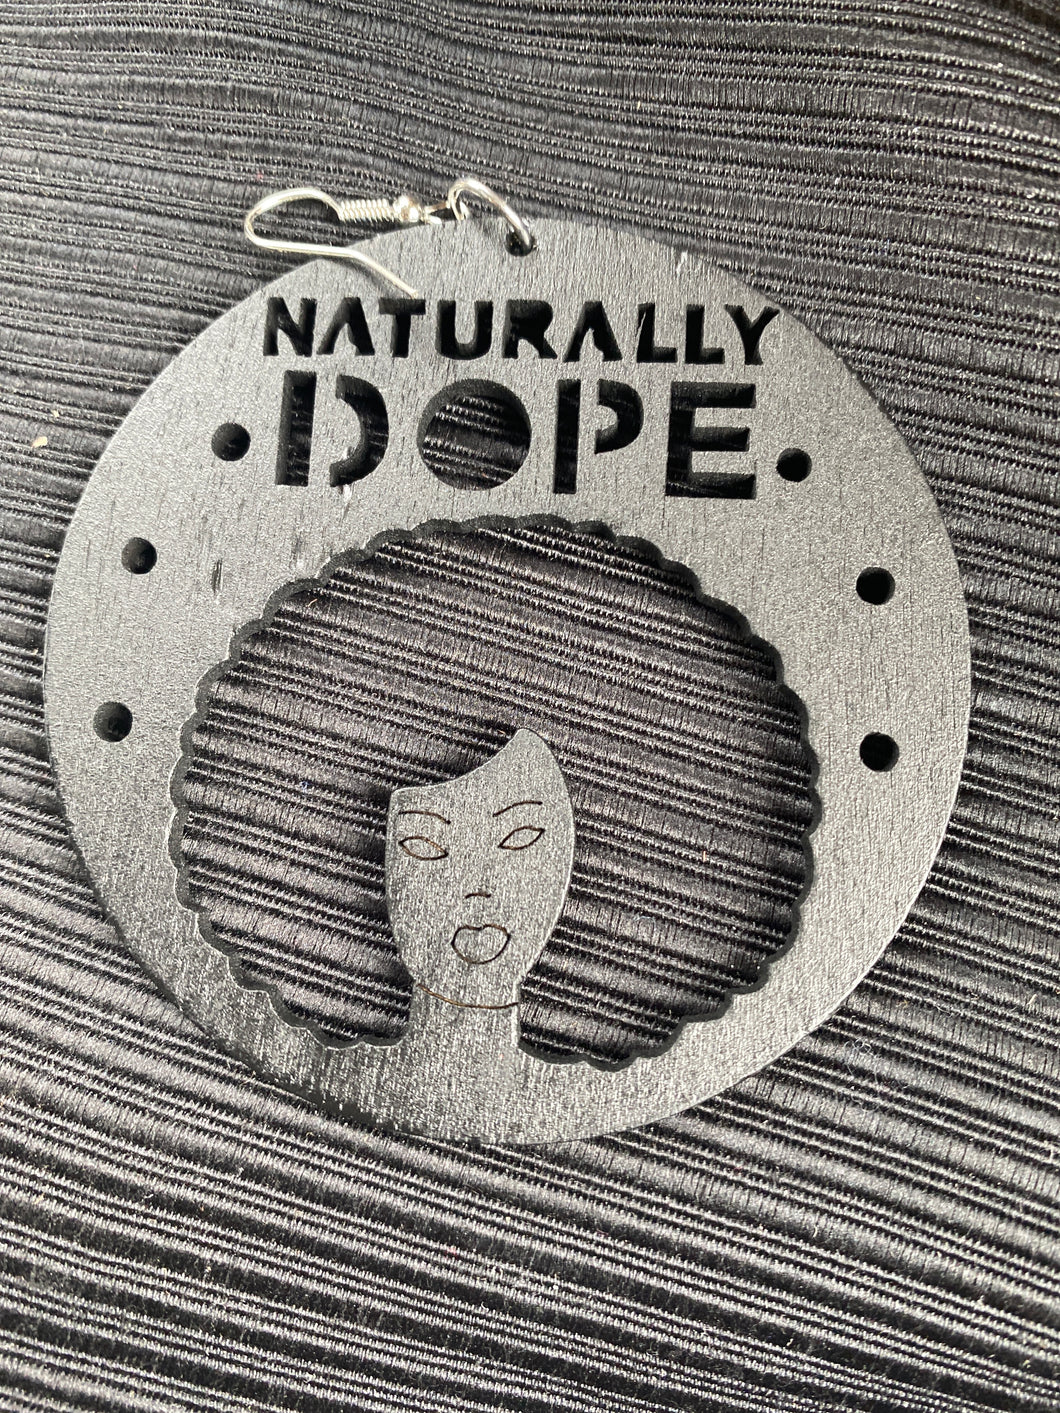 Naturally Dope earrings